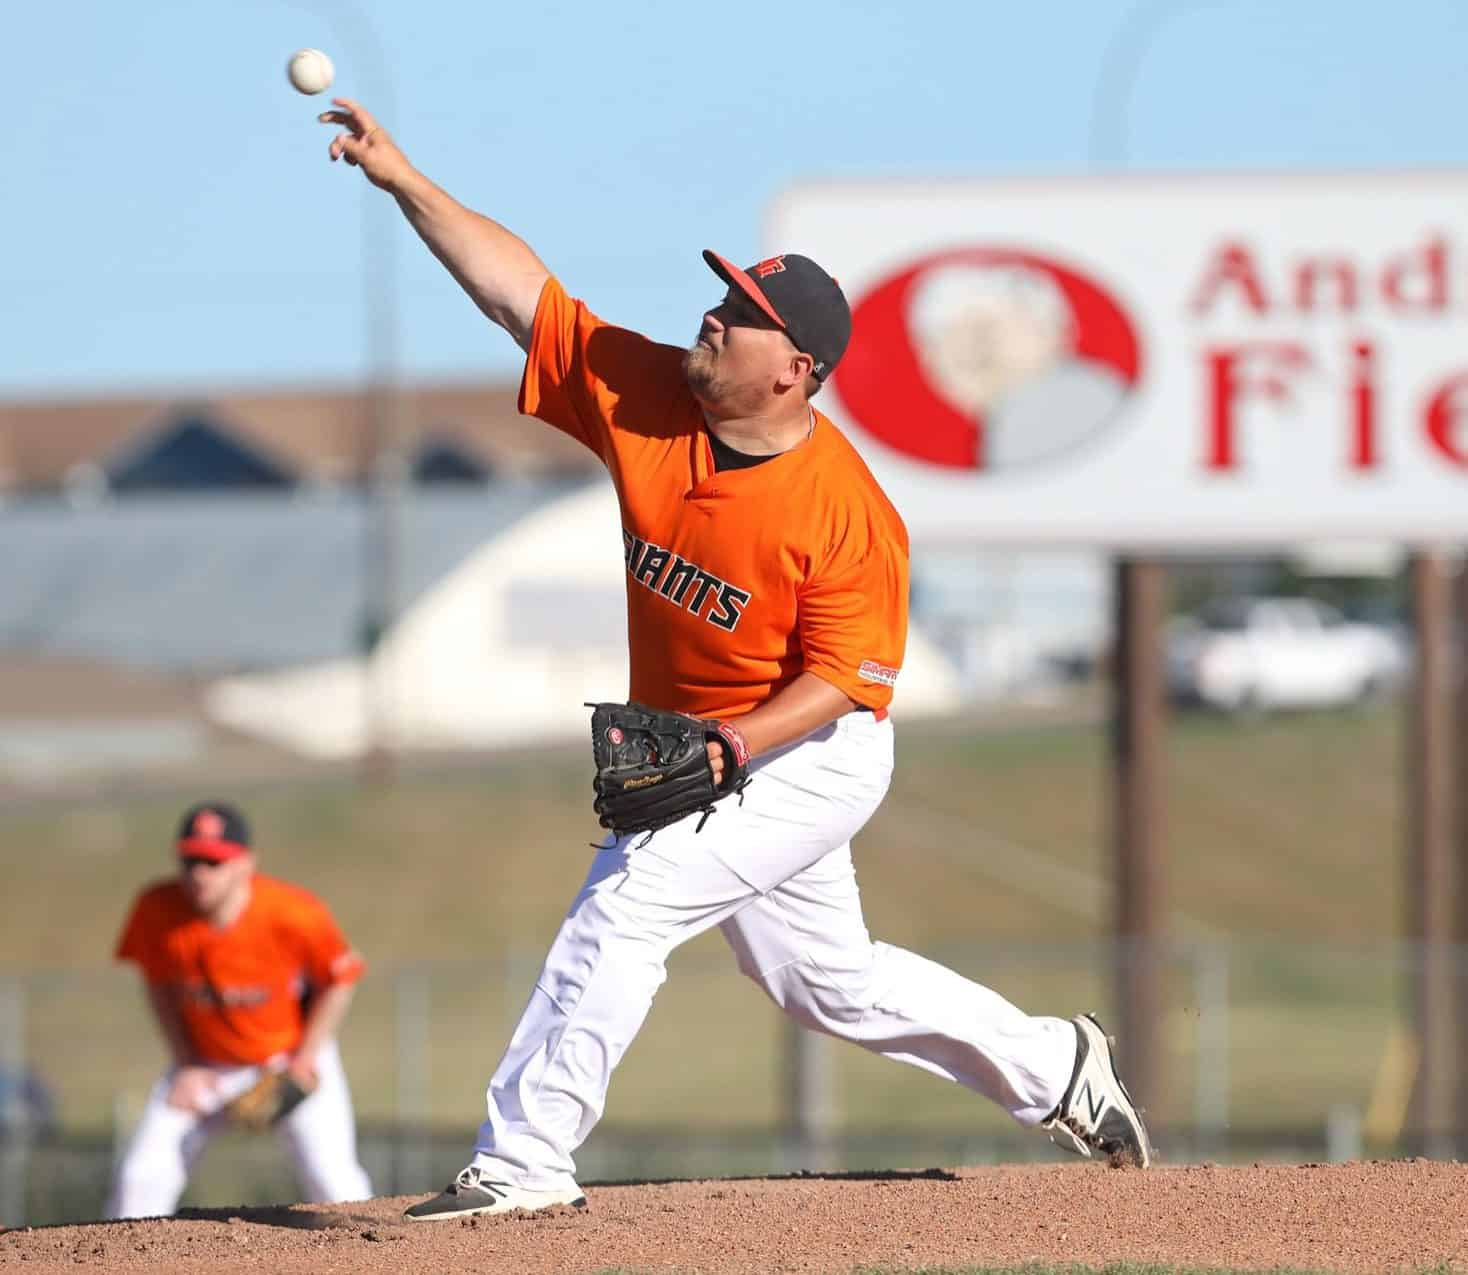 27062018 Jeff Kriski #16 of the Simard Industrial Giants throws a pitch during Andrew Agencies Senior AA baseball league action against the GW Vacuum Trucking Services Young Guns at Andrews Field on Wednesday evening(Tim Smith/The Brandon Sun)